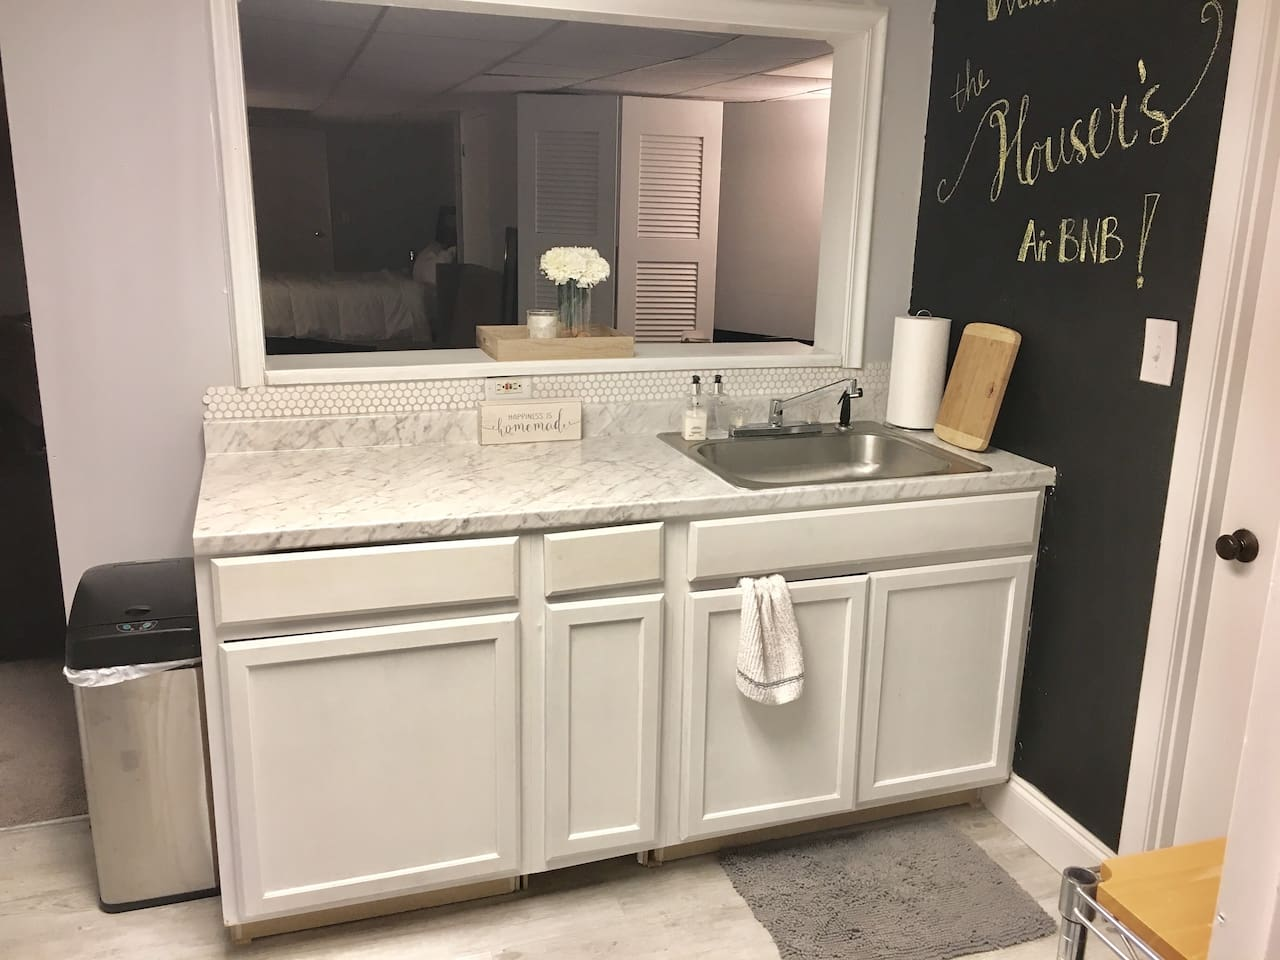 Our fully renovated kitchenette.